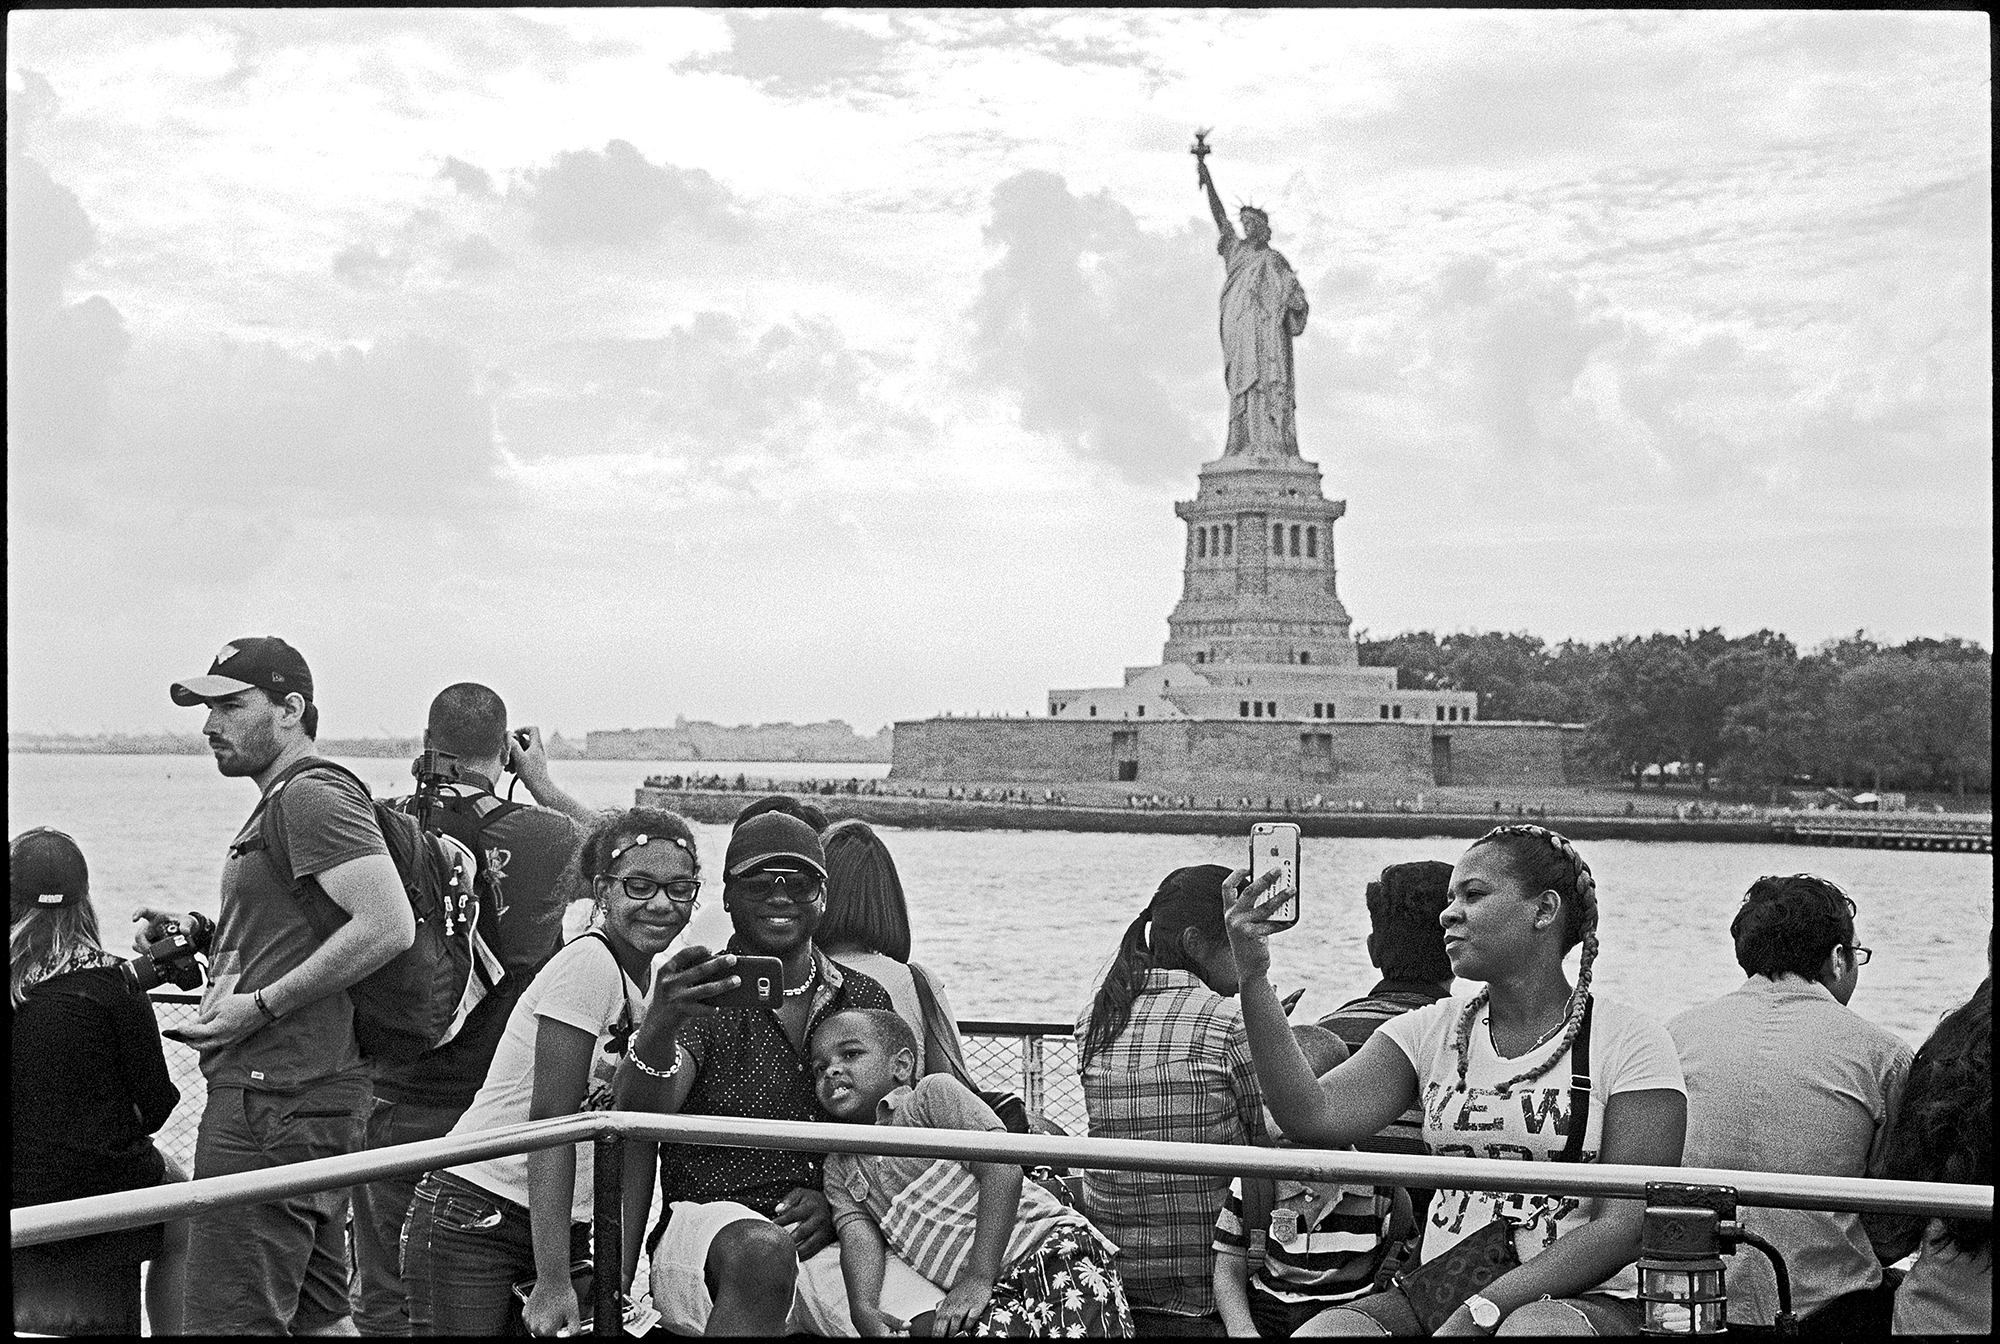 statue of liberty 08-31-16